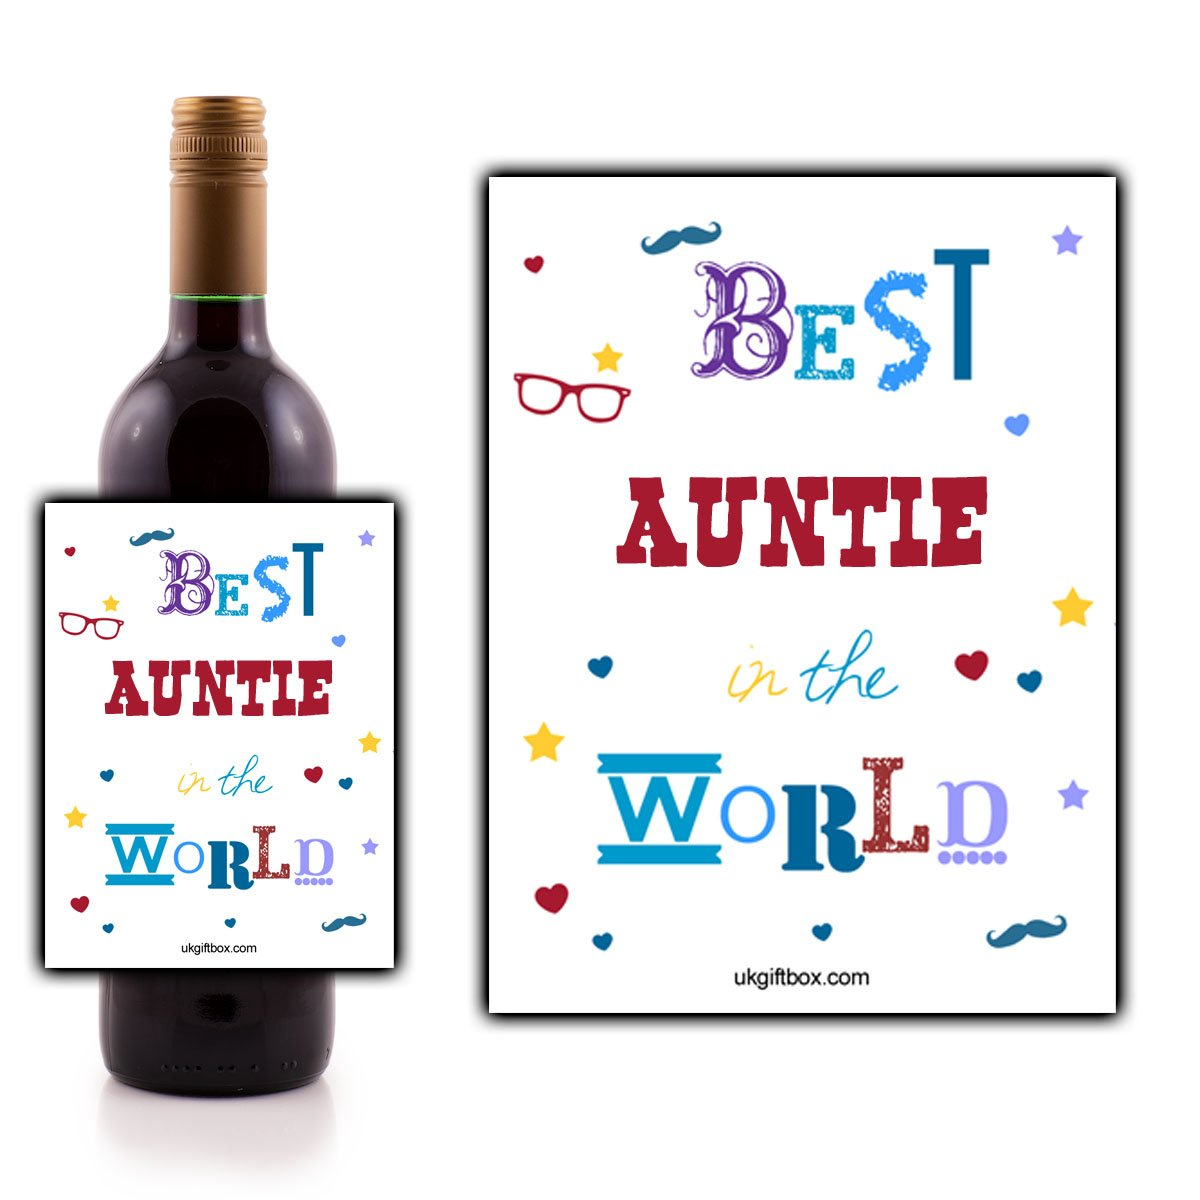 Best Auntie in the World Wine Bottle Label - perfect for adding that special touch to your auntie's favourite wine! ukgiftbox